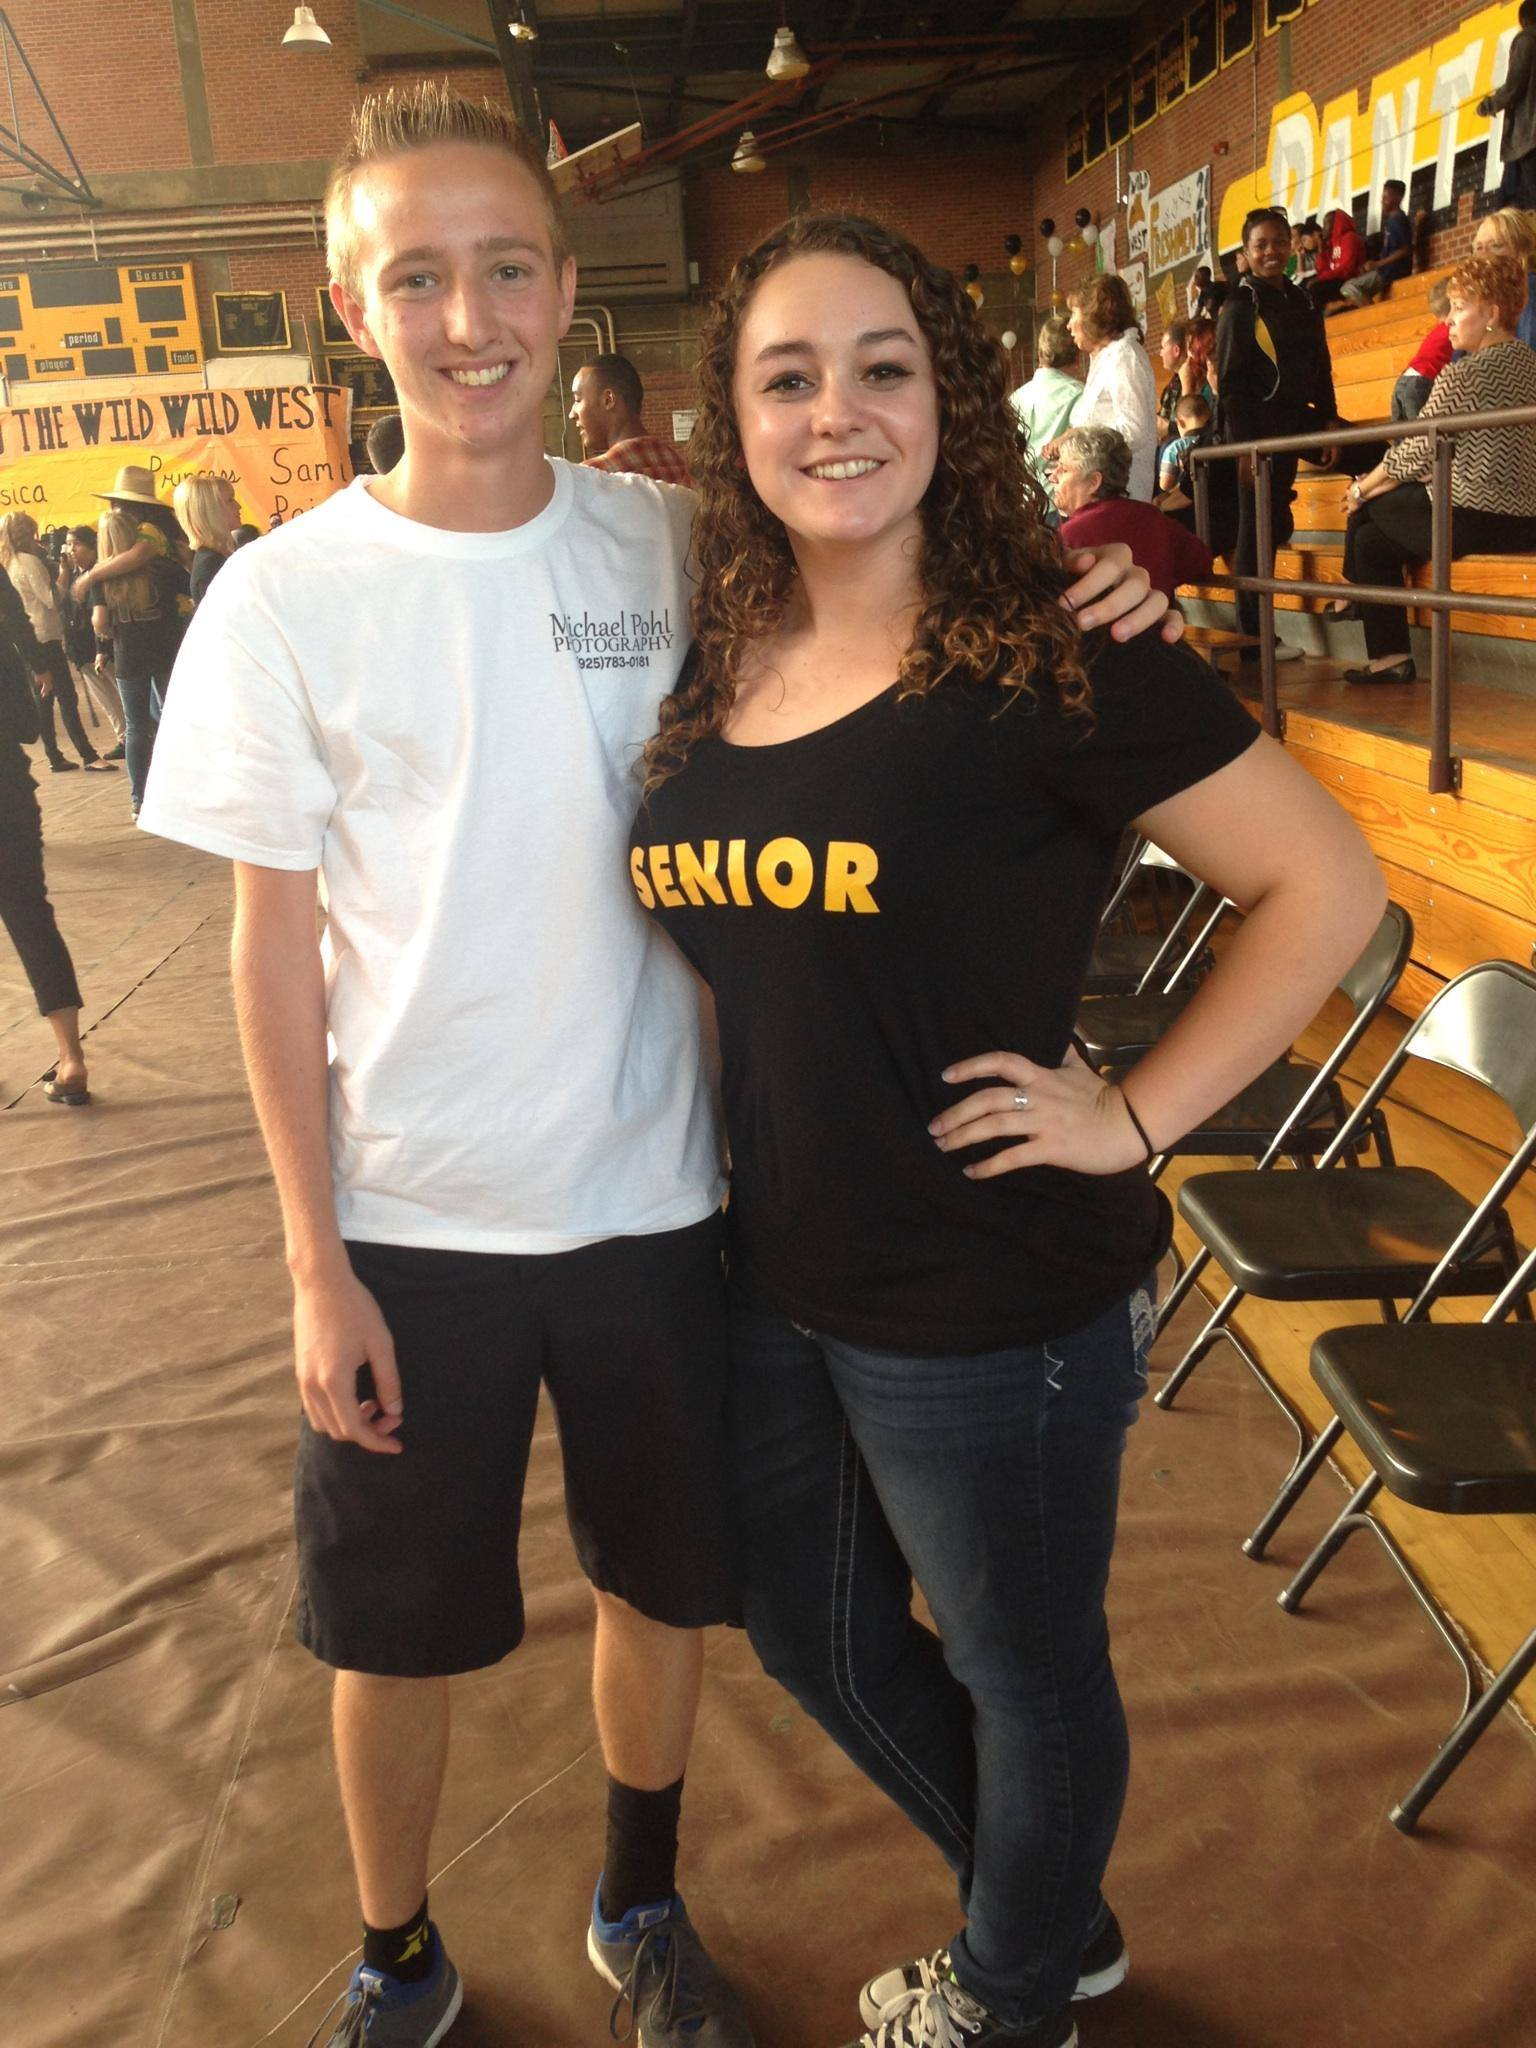 Taylor Daniel (right) and I after  Antioch High's Class of 2015 Homecoming Rally our senior year.